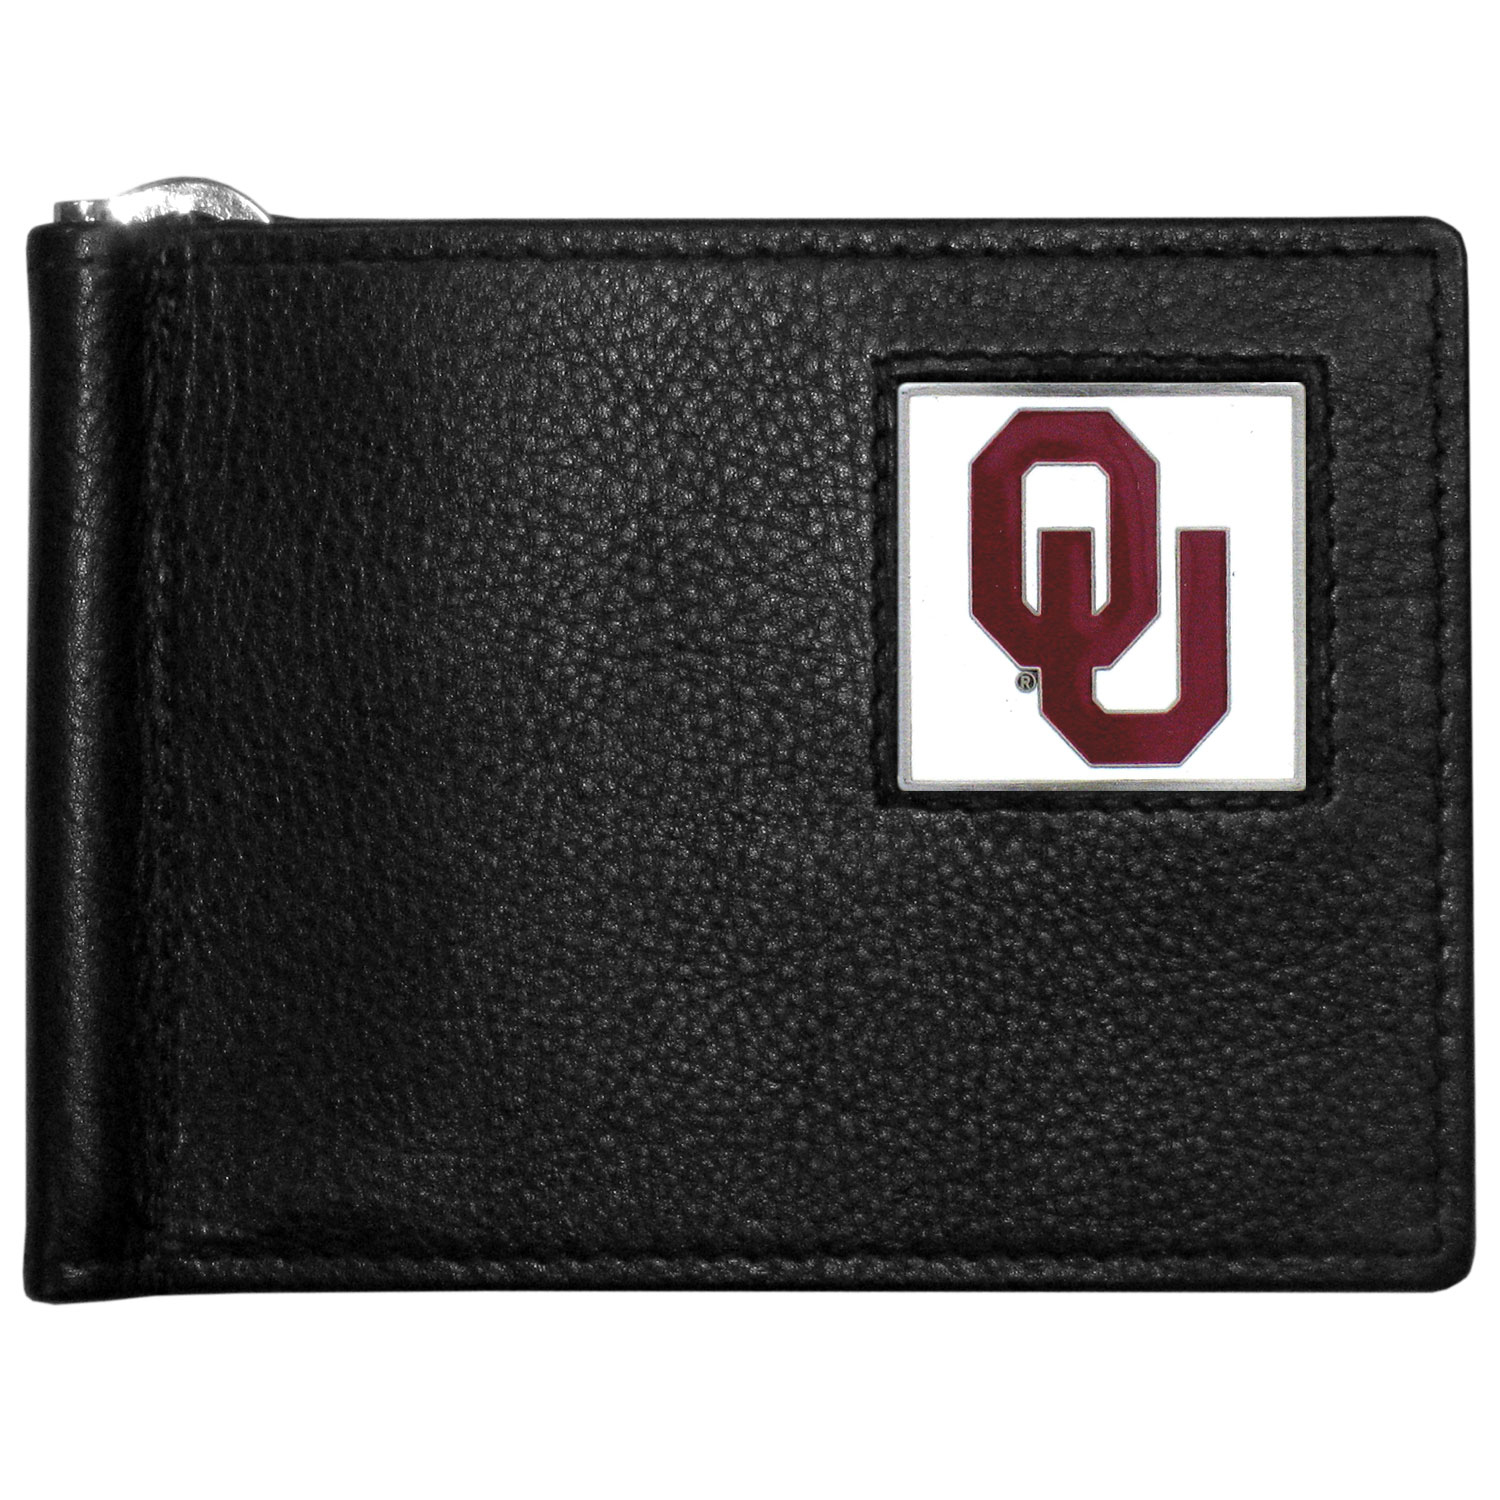 Oklahoma Sooners Leather Bill Clip Wallet - This cool new style wallet features an inner, metal bill clip that lips up for easy access. The super slim wallet holds tons of stuff with ample pockets, credit card slots & windowed ID slot. The wallet is made of genuine fine grain leather and it finished with a metal Oklahoma Sooners emblem. The wallet is shipped in gift box packaging.